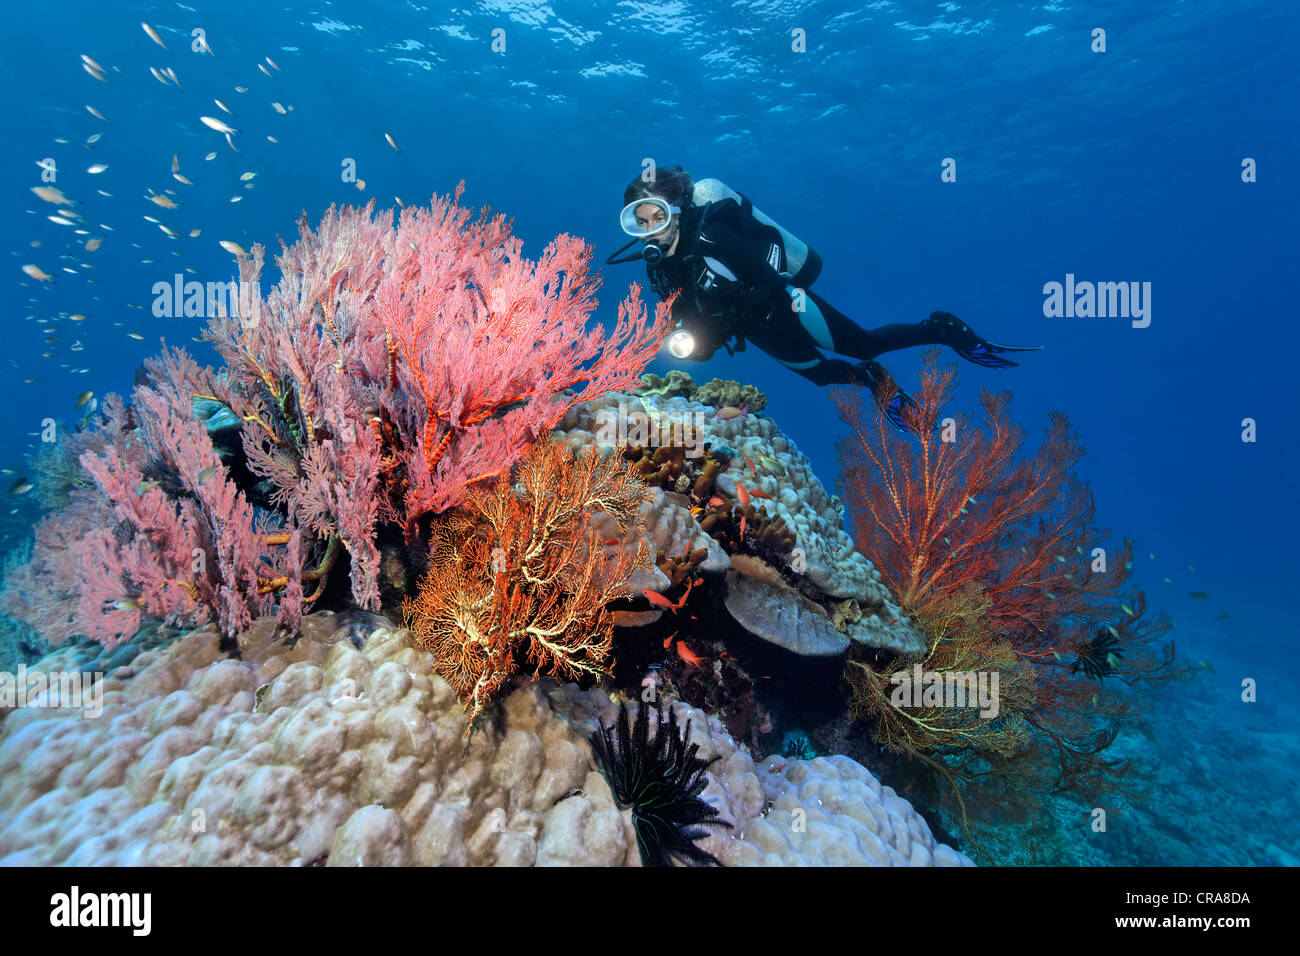 Scuba diver observing various Sea Fans (Melithaea sp.), stone corals and sponges, Great Barrier Reef, UNESCO World - Stock Image